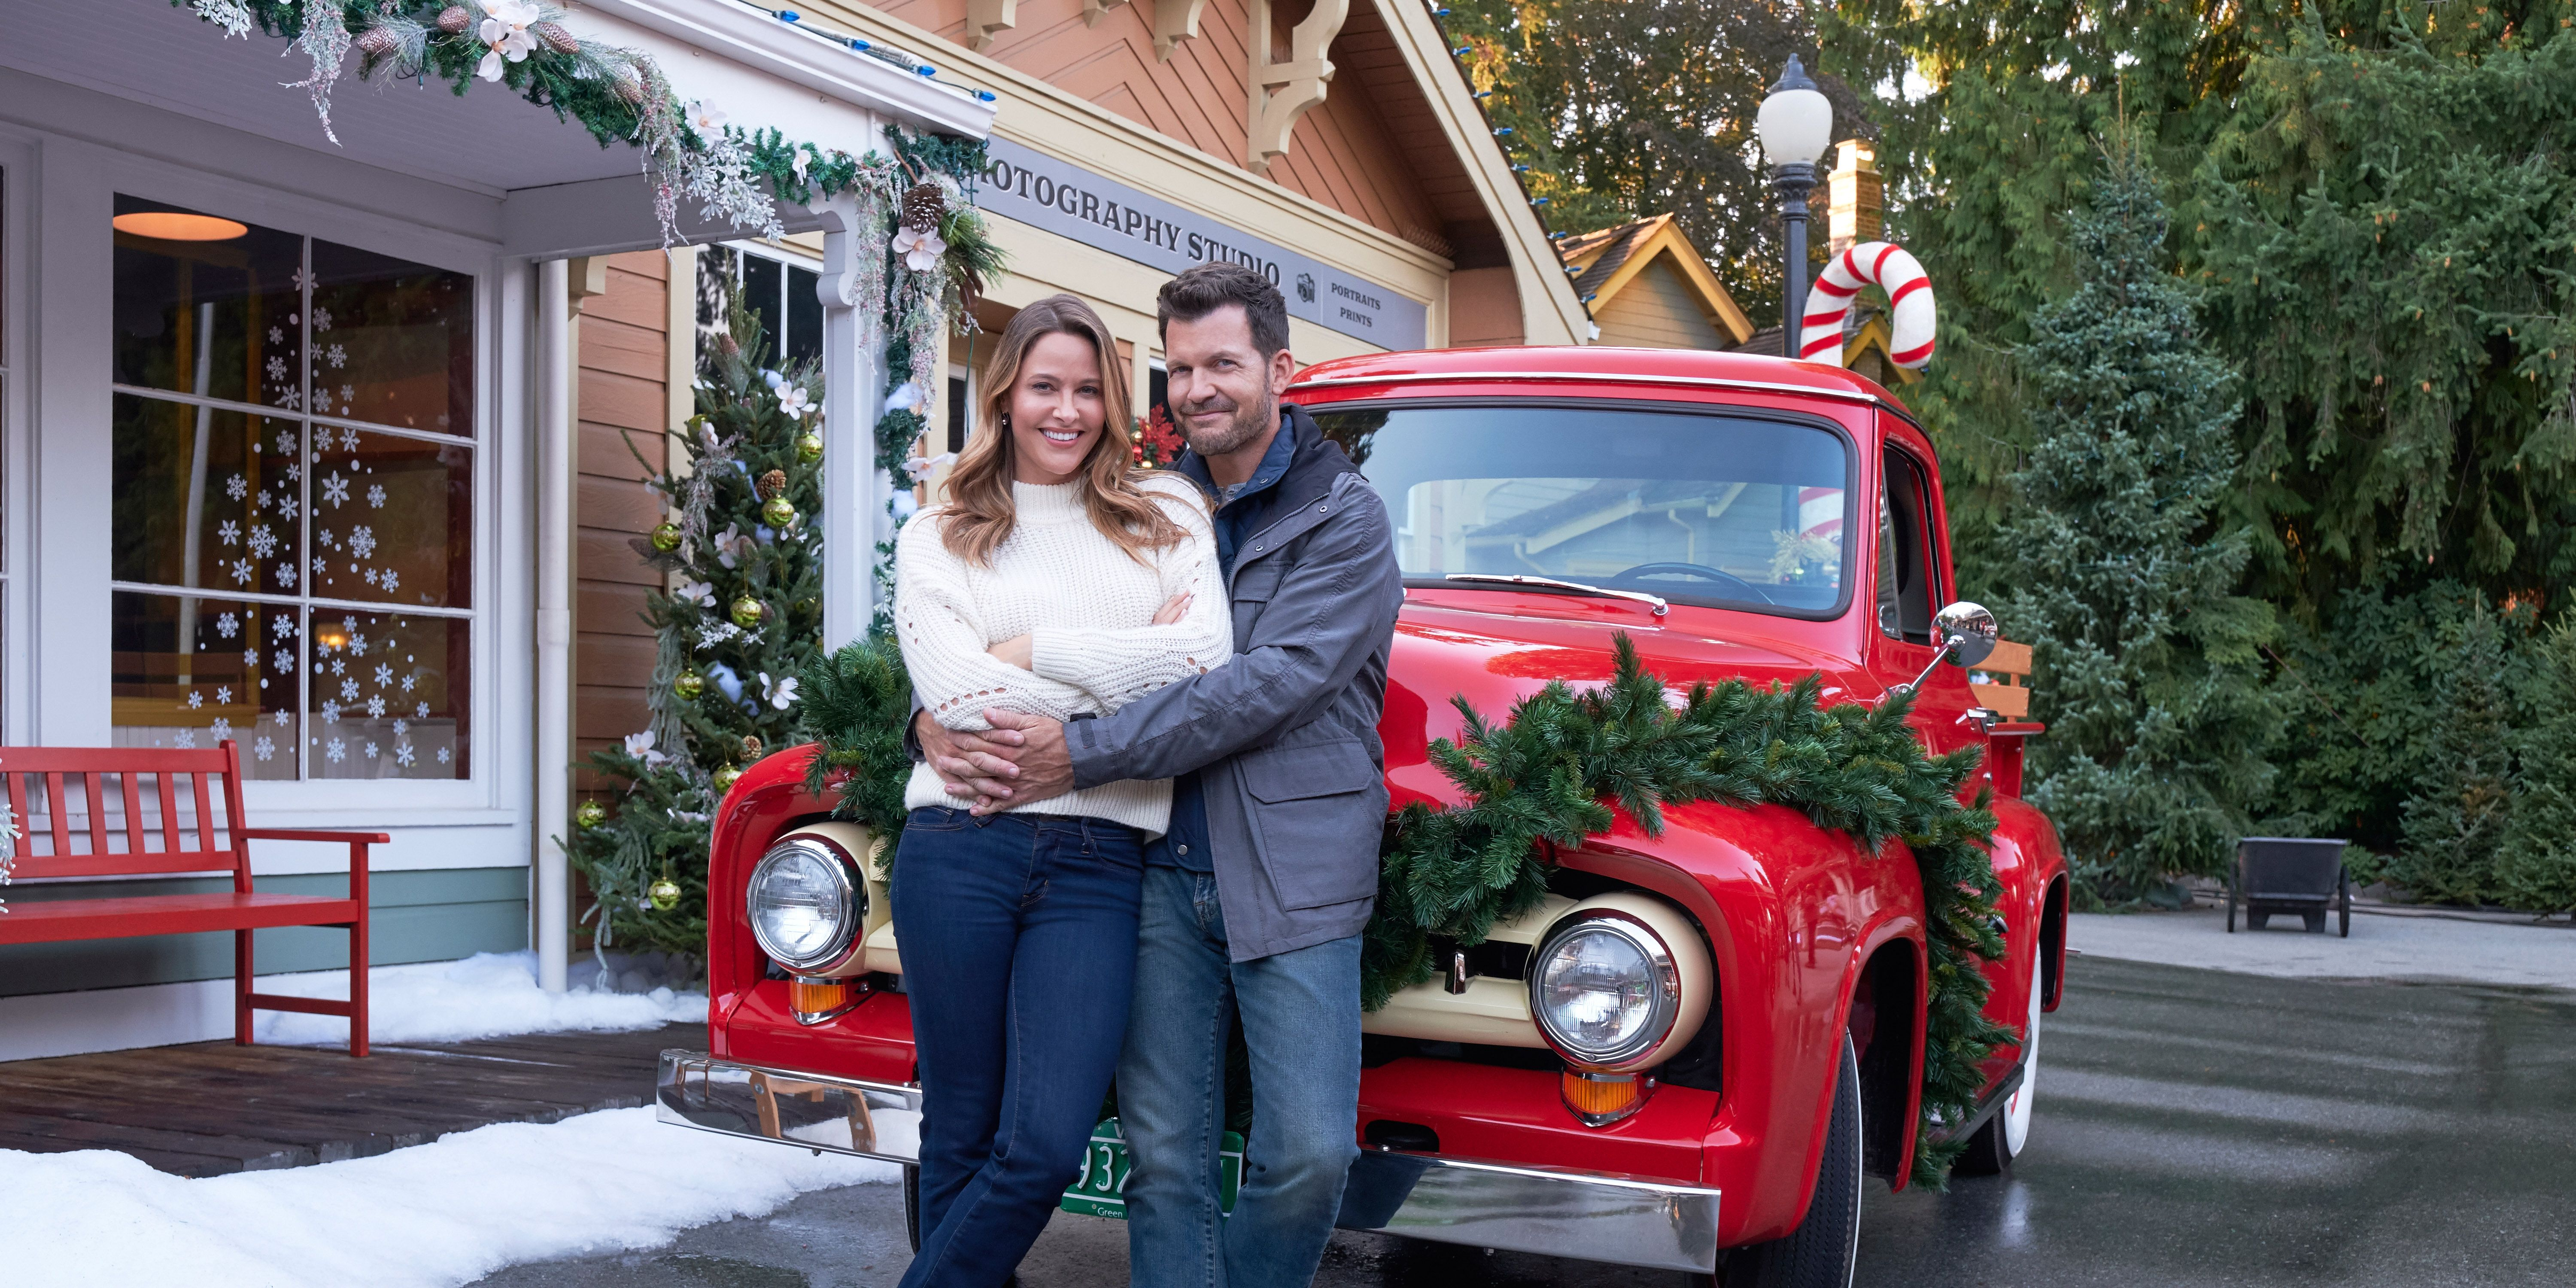 This Hallmark Christmas Movie Set Is a Historic Village You Can Visit In Real Life